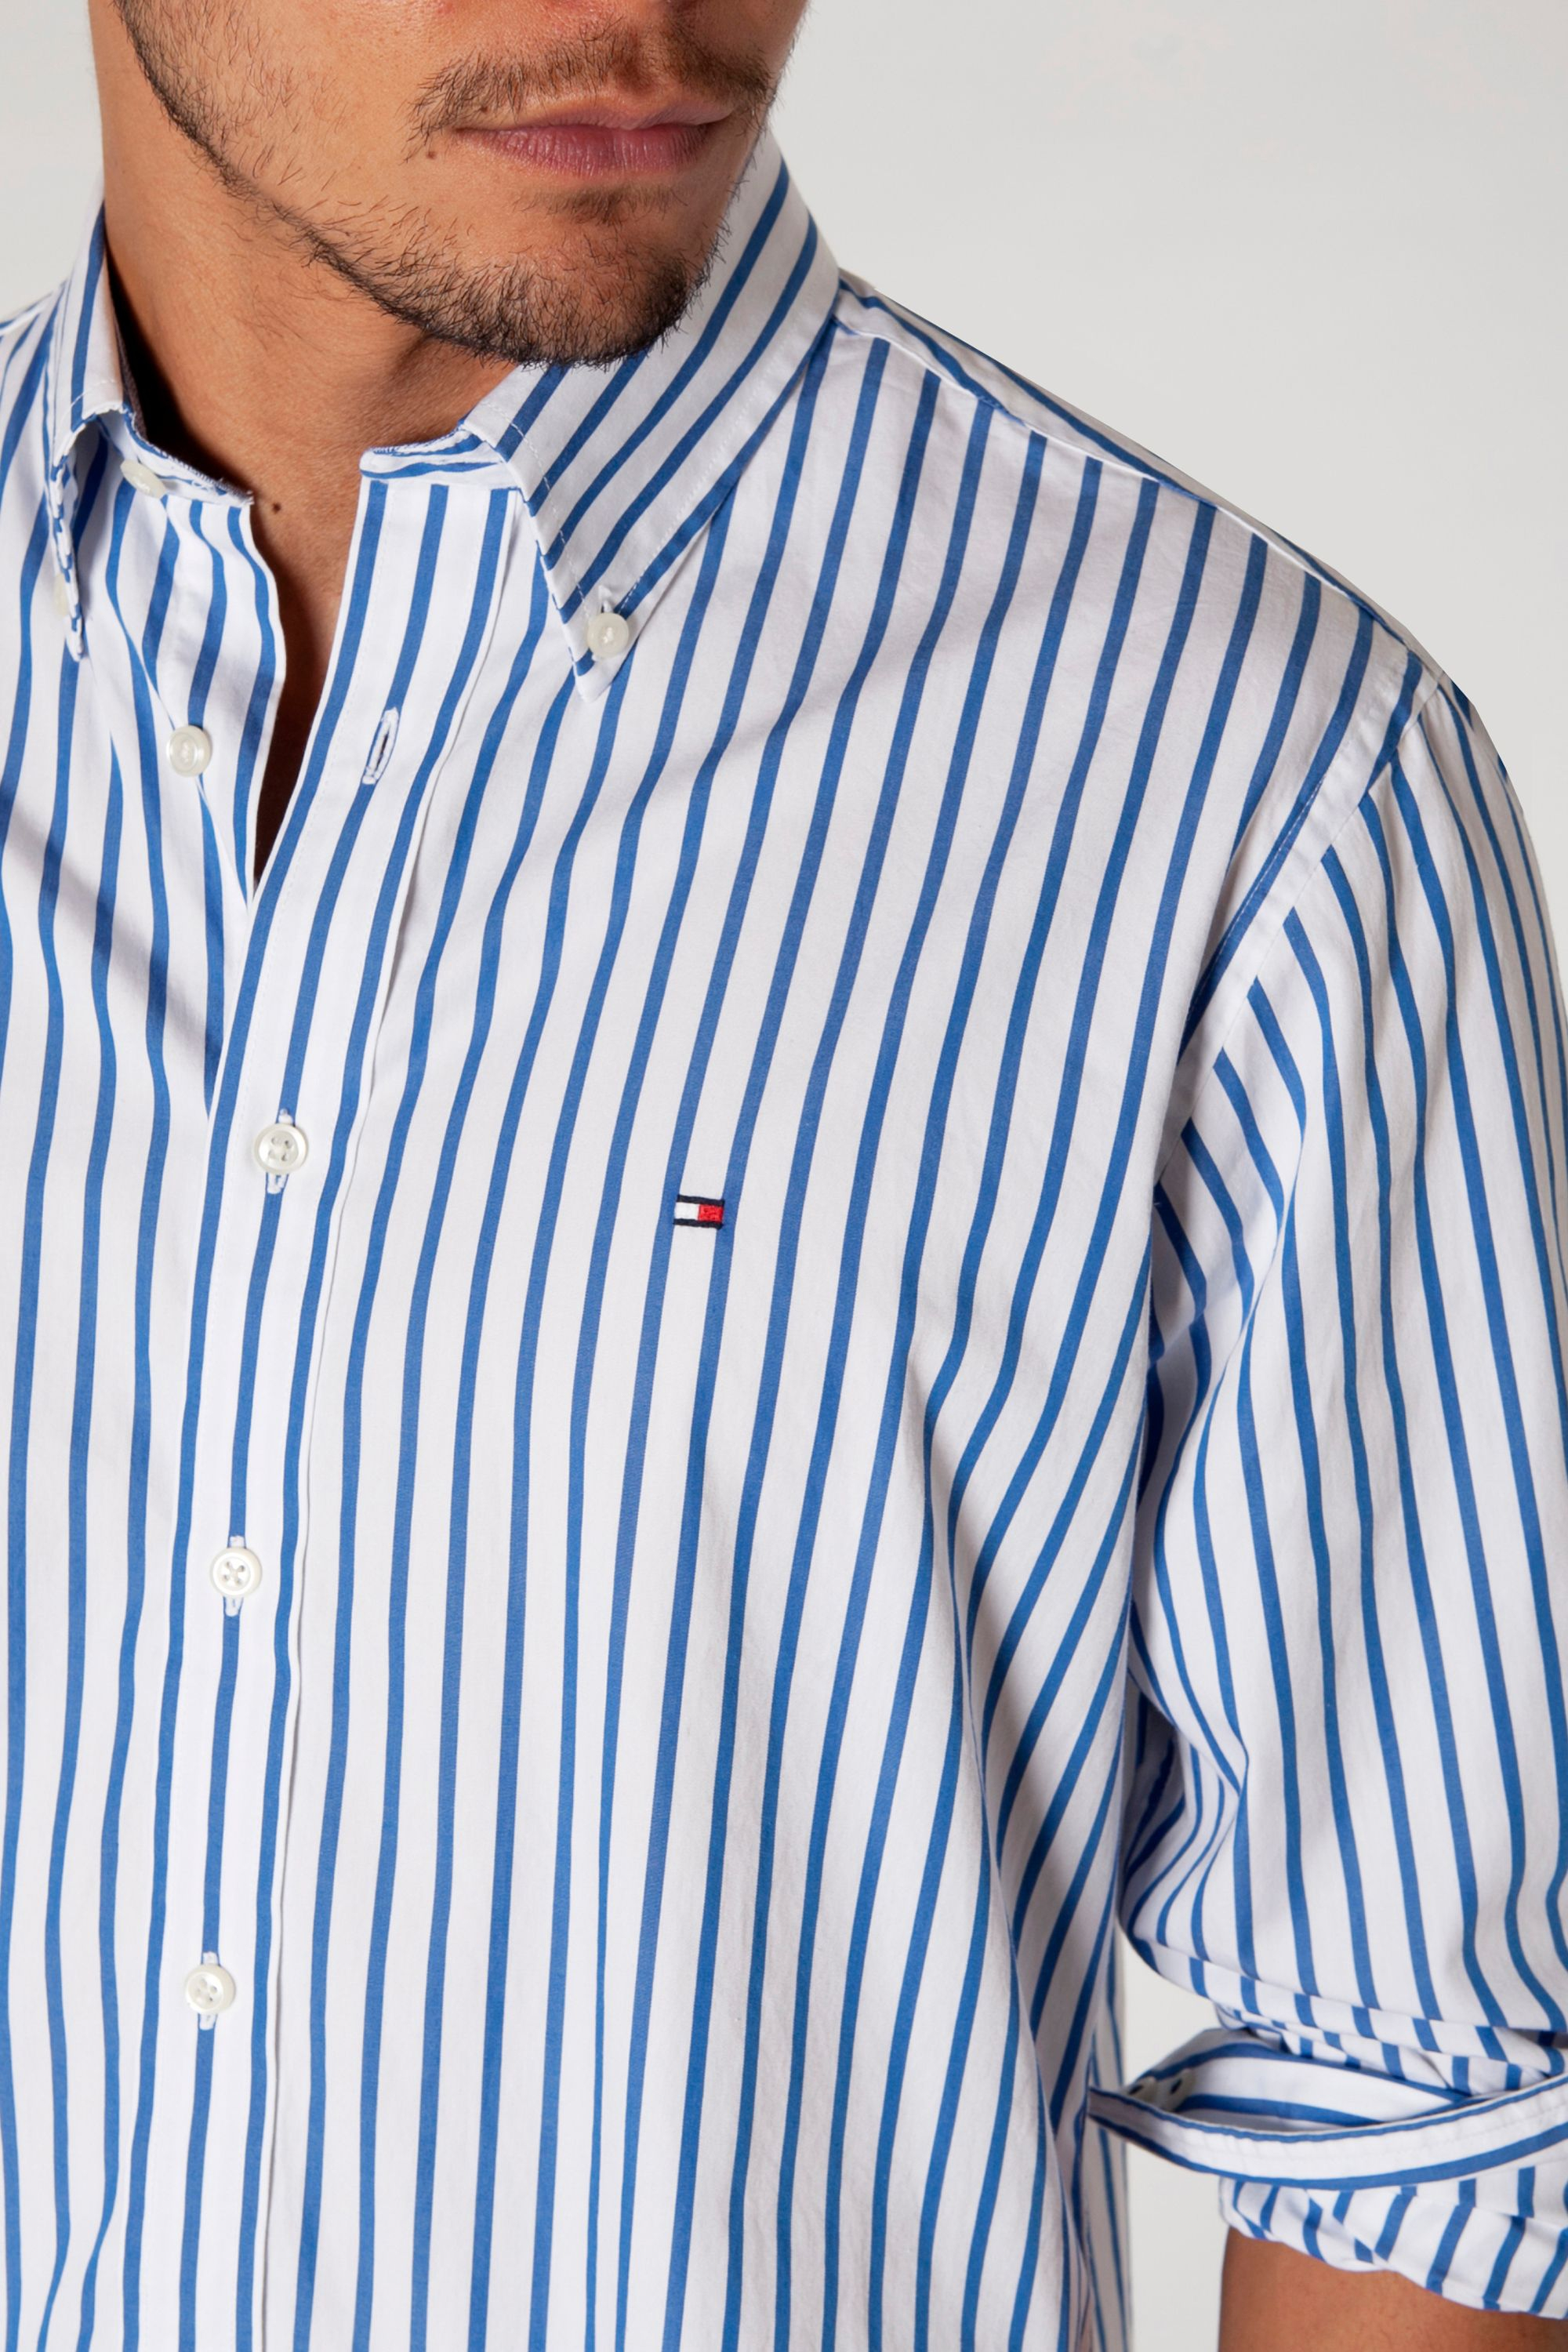 Mens Core Stripe Casual Shirt Tommy Hilfiger Cheap Sale Best Place Free Shipping Best Prices Buy Cheap Prices Great Deals Sale Online zb7gSMzja